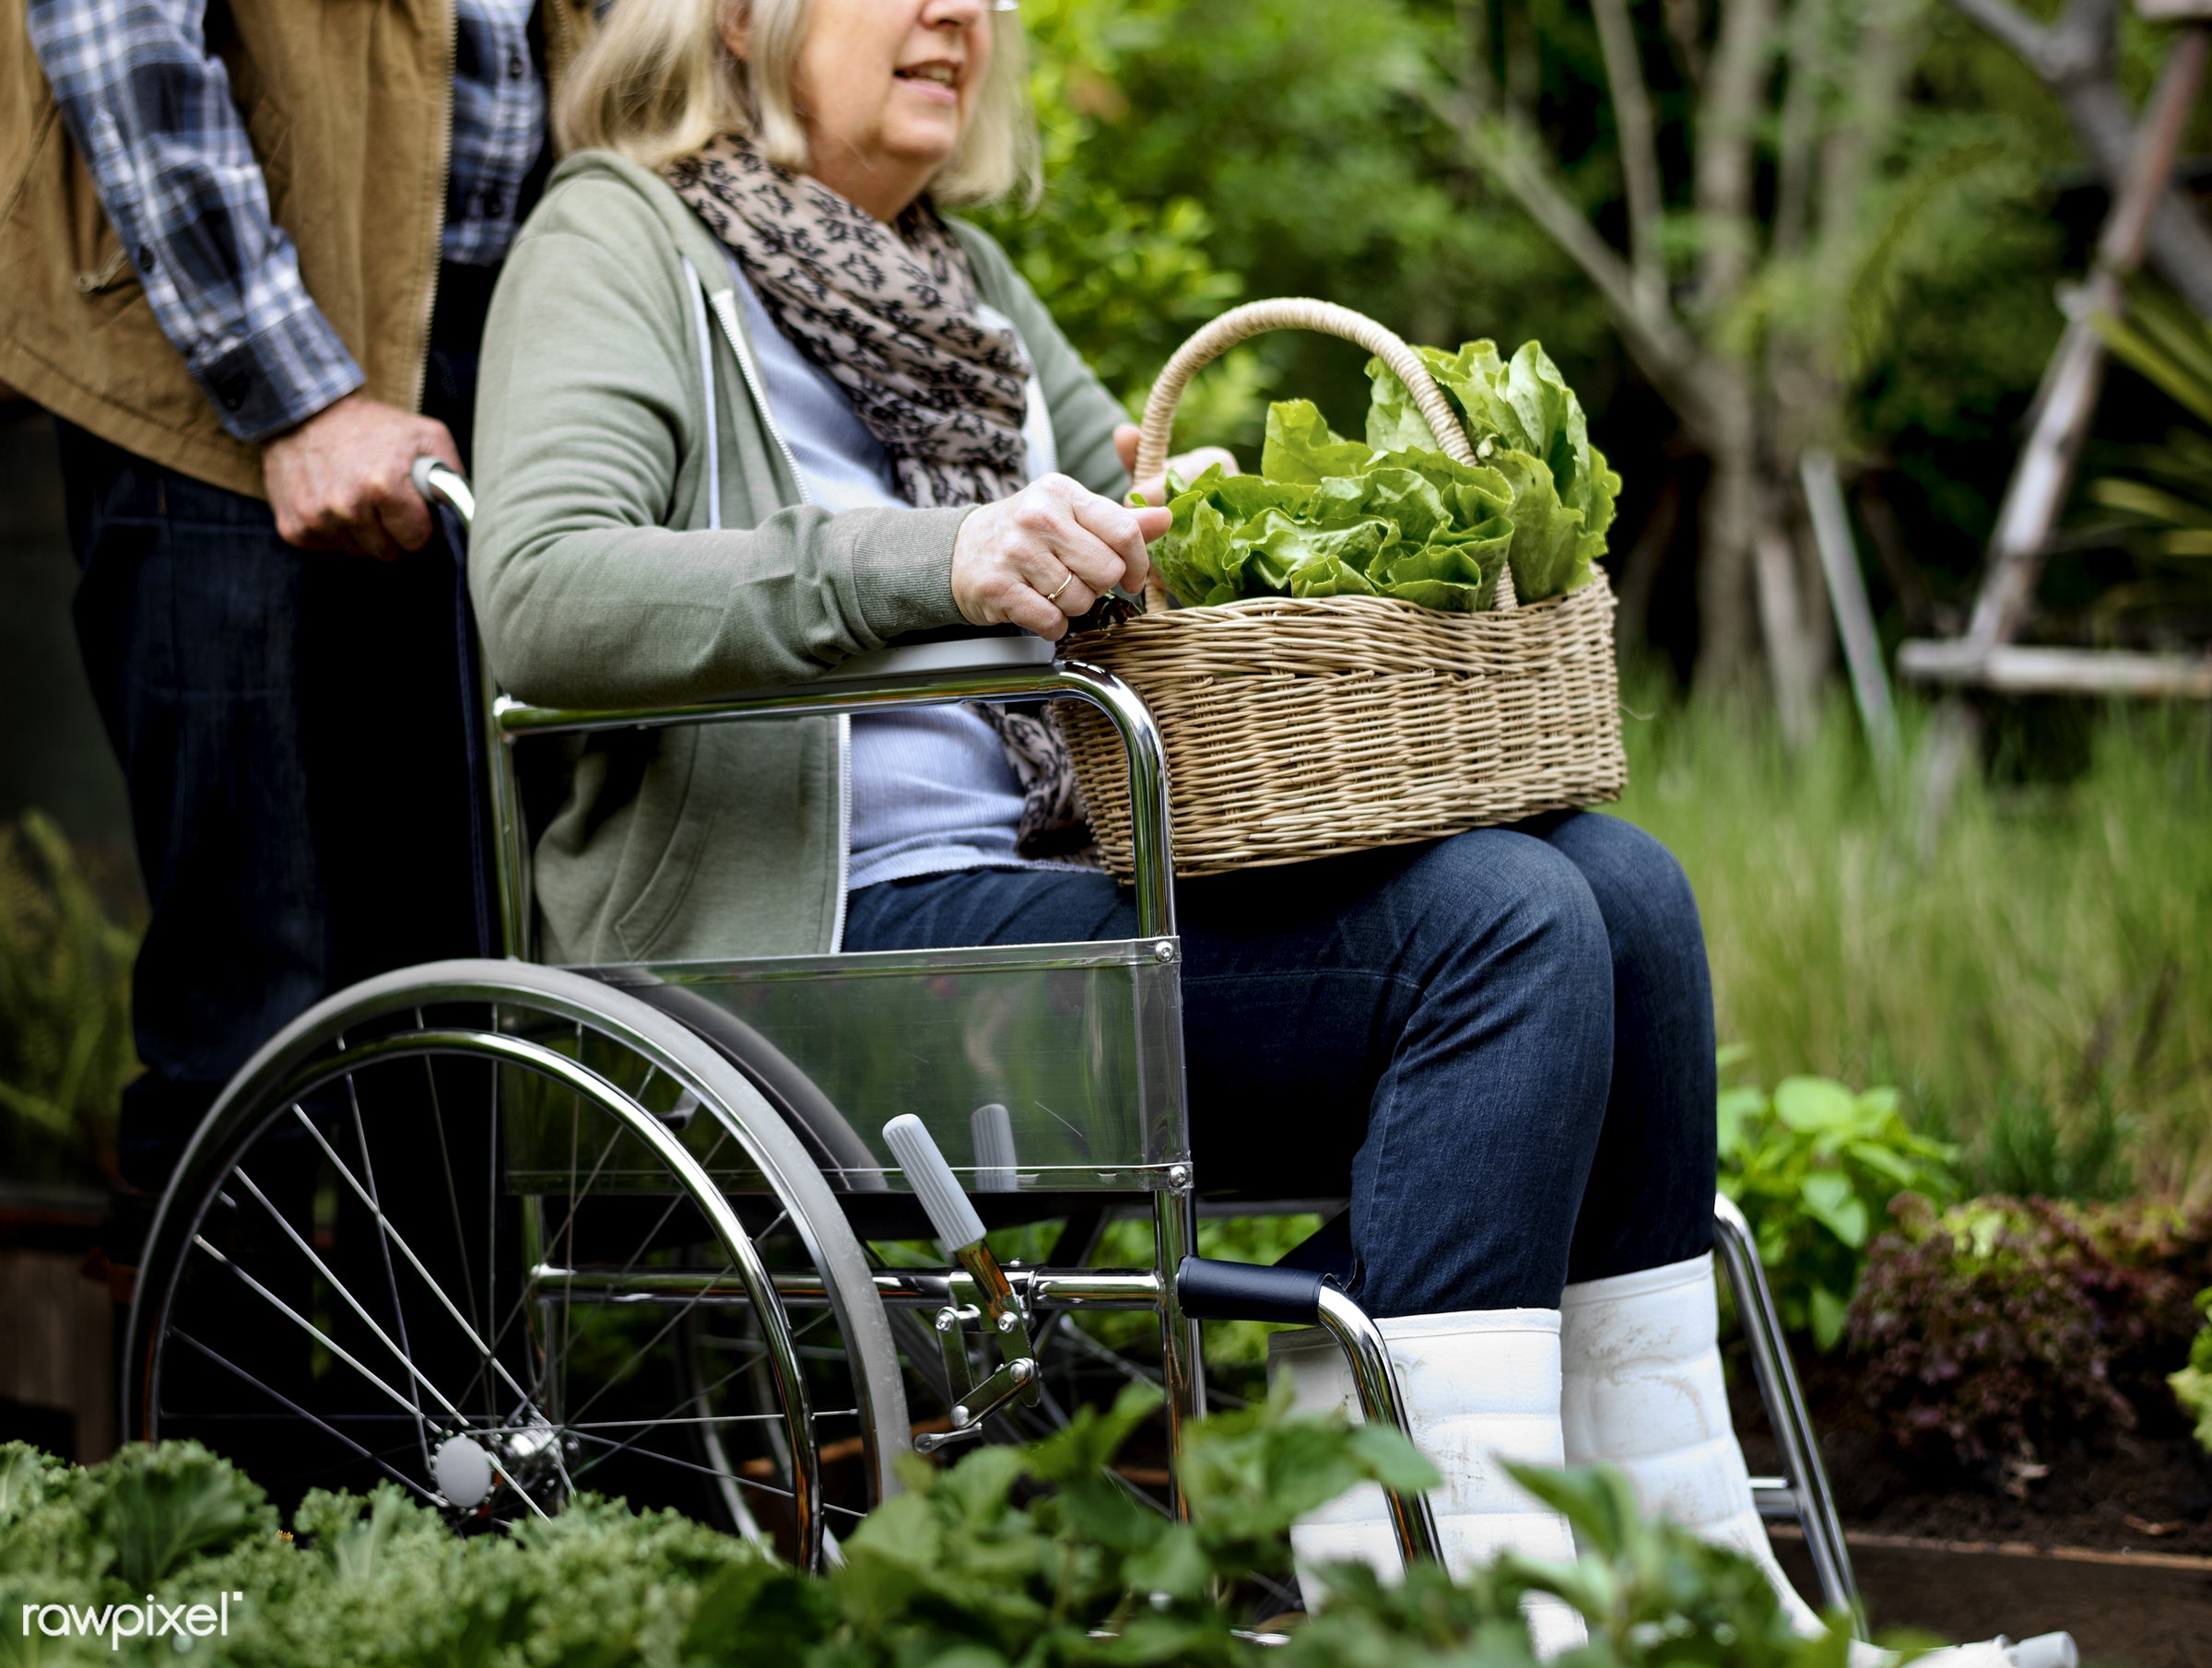 countryside, person, relax, greenhouse, botanical, plantation, together, caucasian, love, retirement, cripple, tree, farmer...